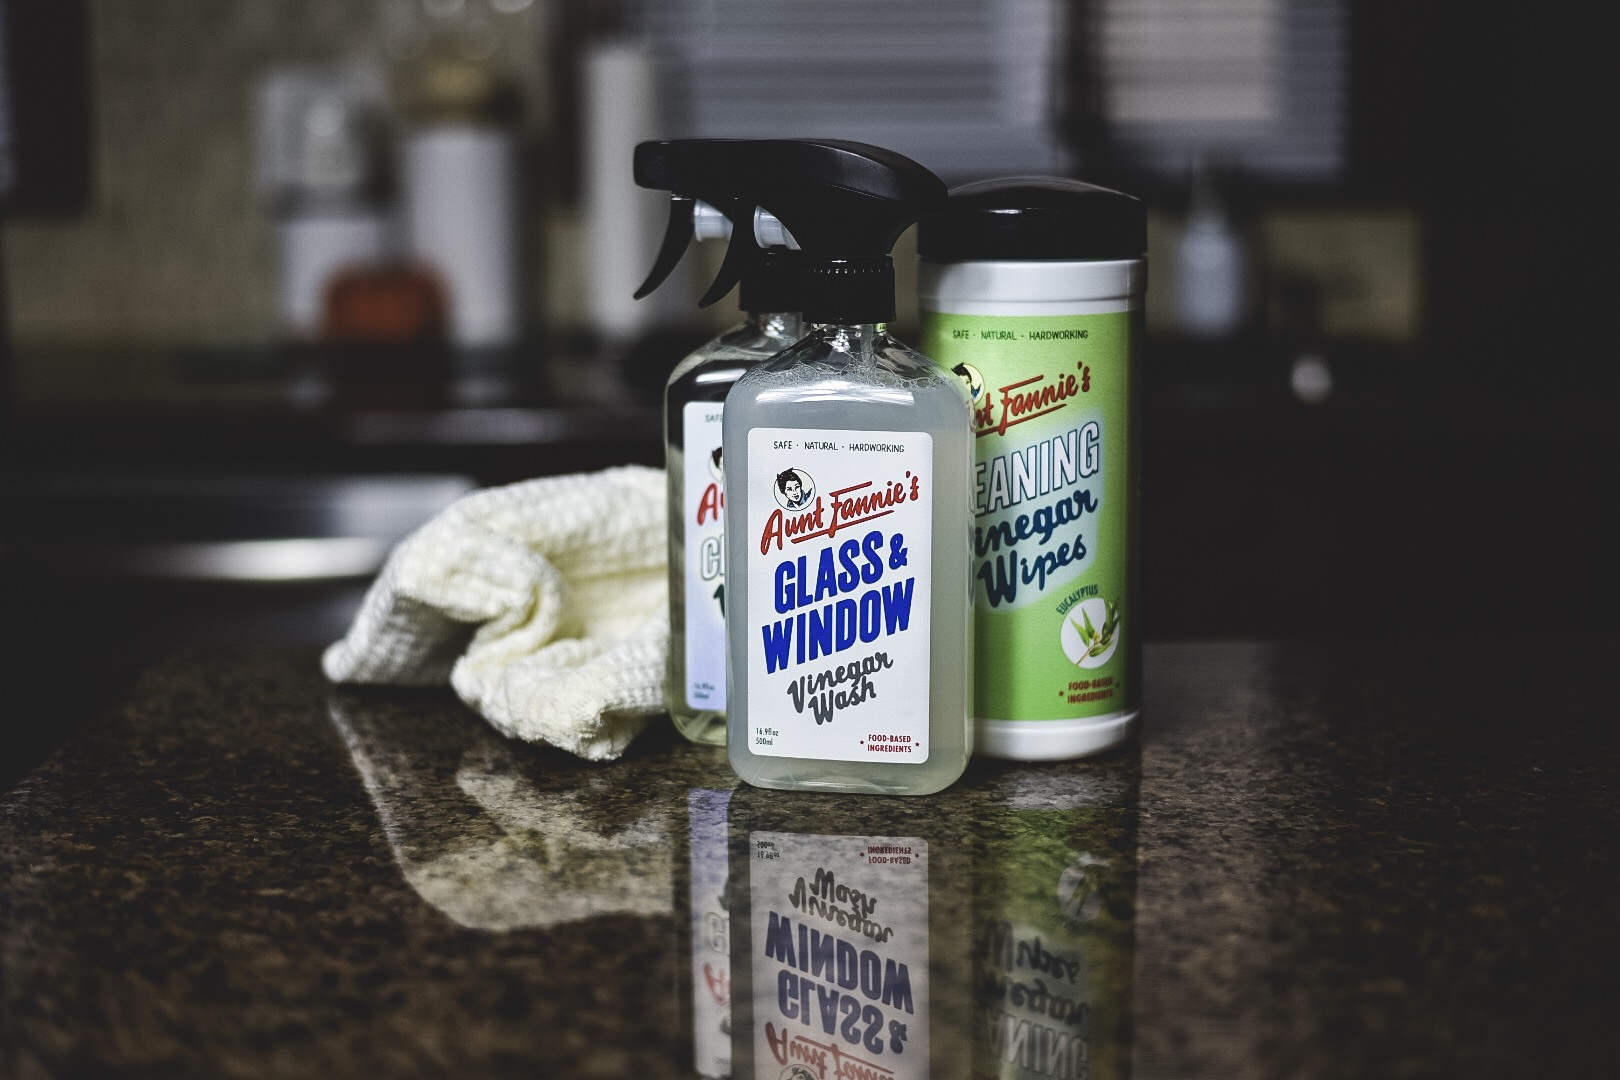 aunt fannie's, #HomeSweetBiome #HealthierHousekeeping #PlantBased #NaturalCleaning